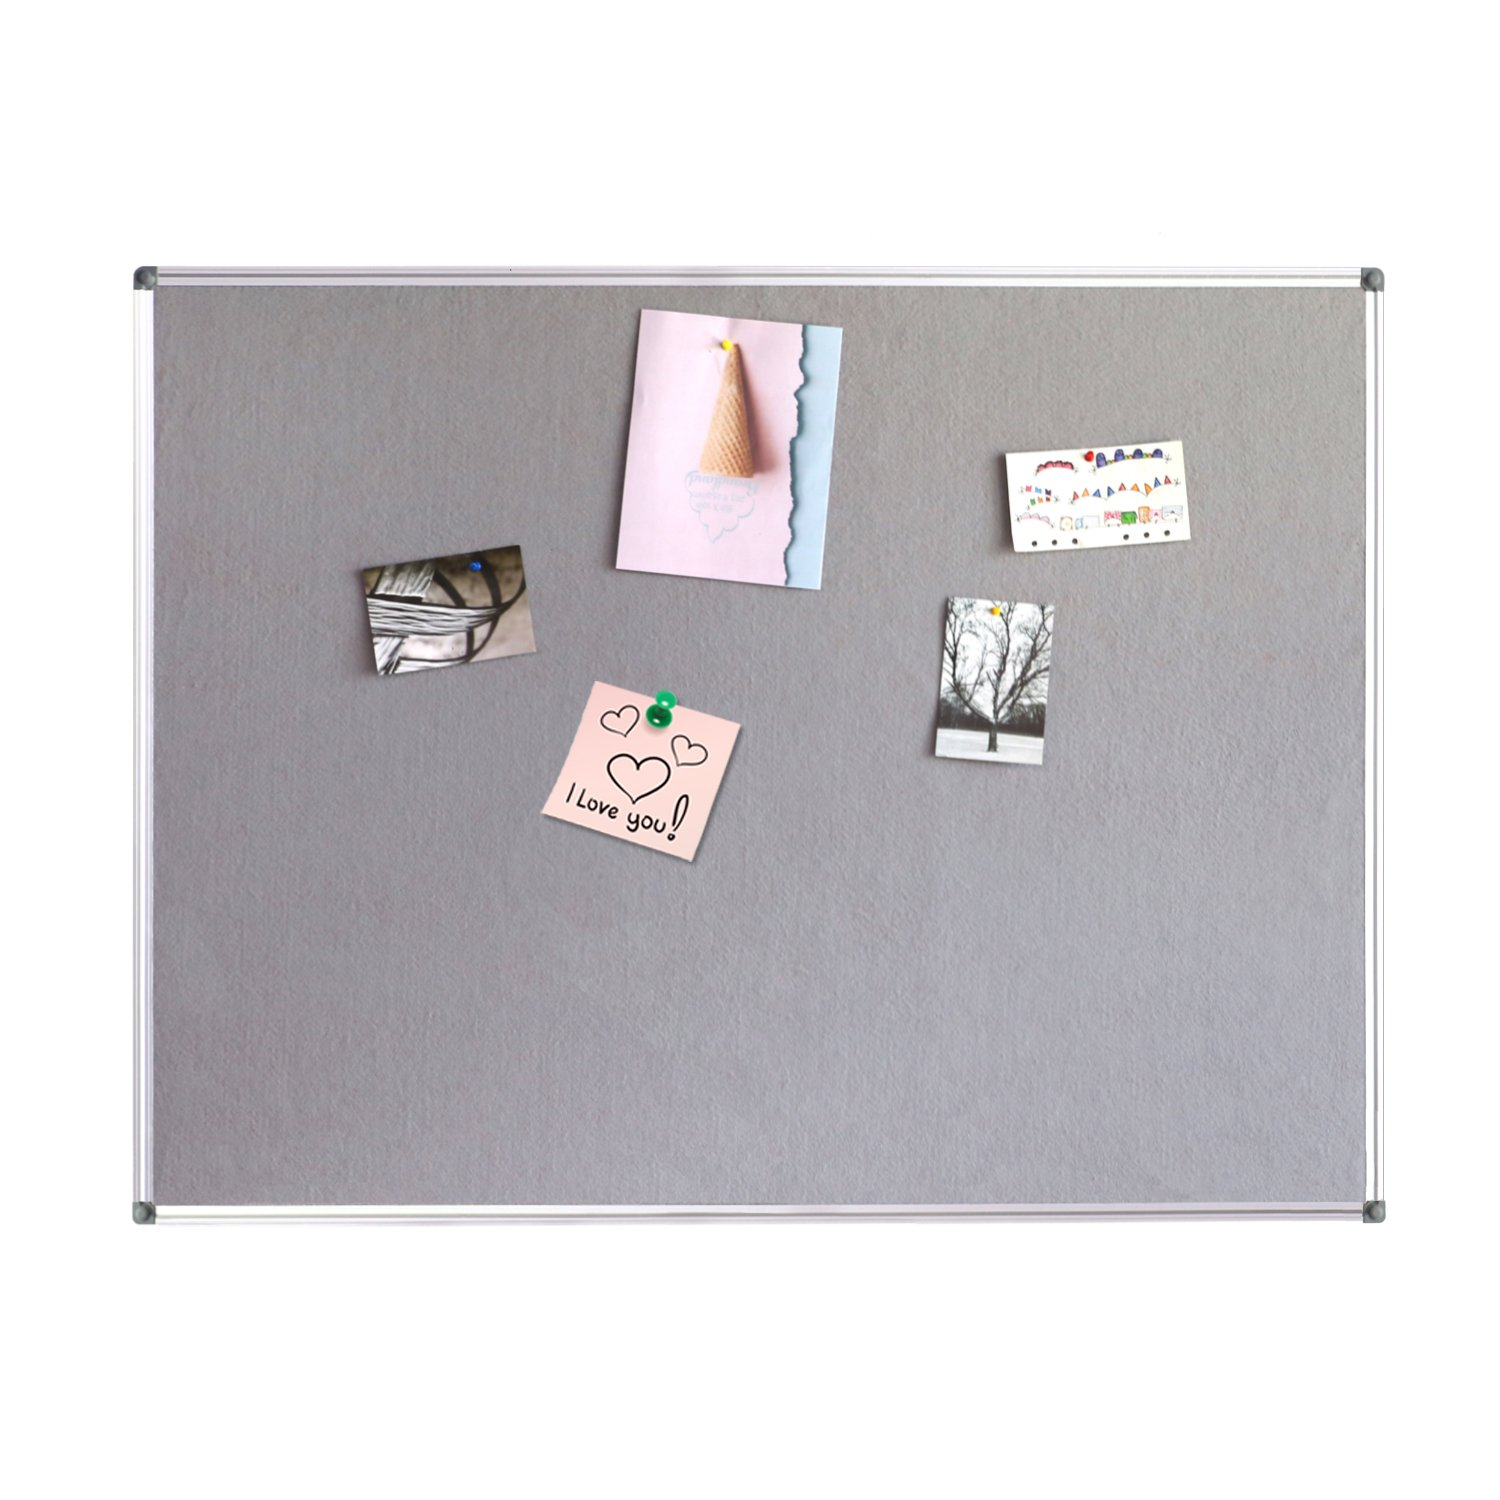 4 THOUGHT Fabric Bulletin Board 48 x 36 Inches Wall Mounted with Silver Aluminium Frame Message Memo Pin Board for Display and Organize Office or Classroom, 4 x 3 Feet, 10 Push Pins Included, Gray